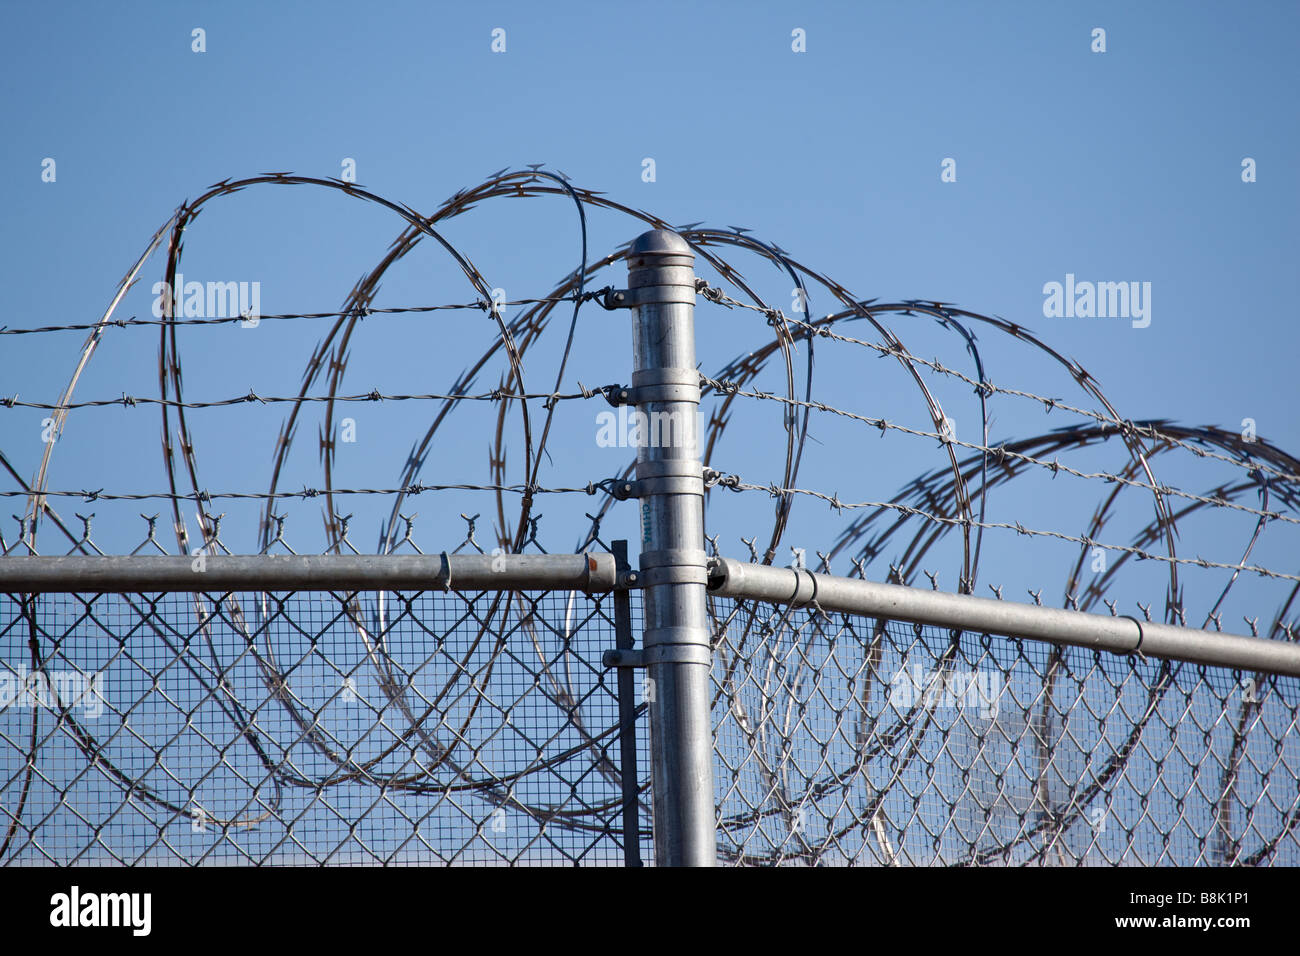 Security fence surrounding a detention center - Stock Image